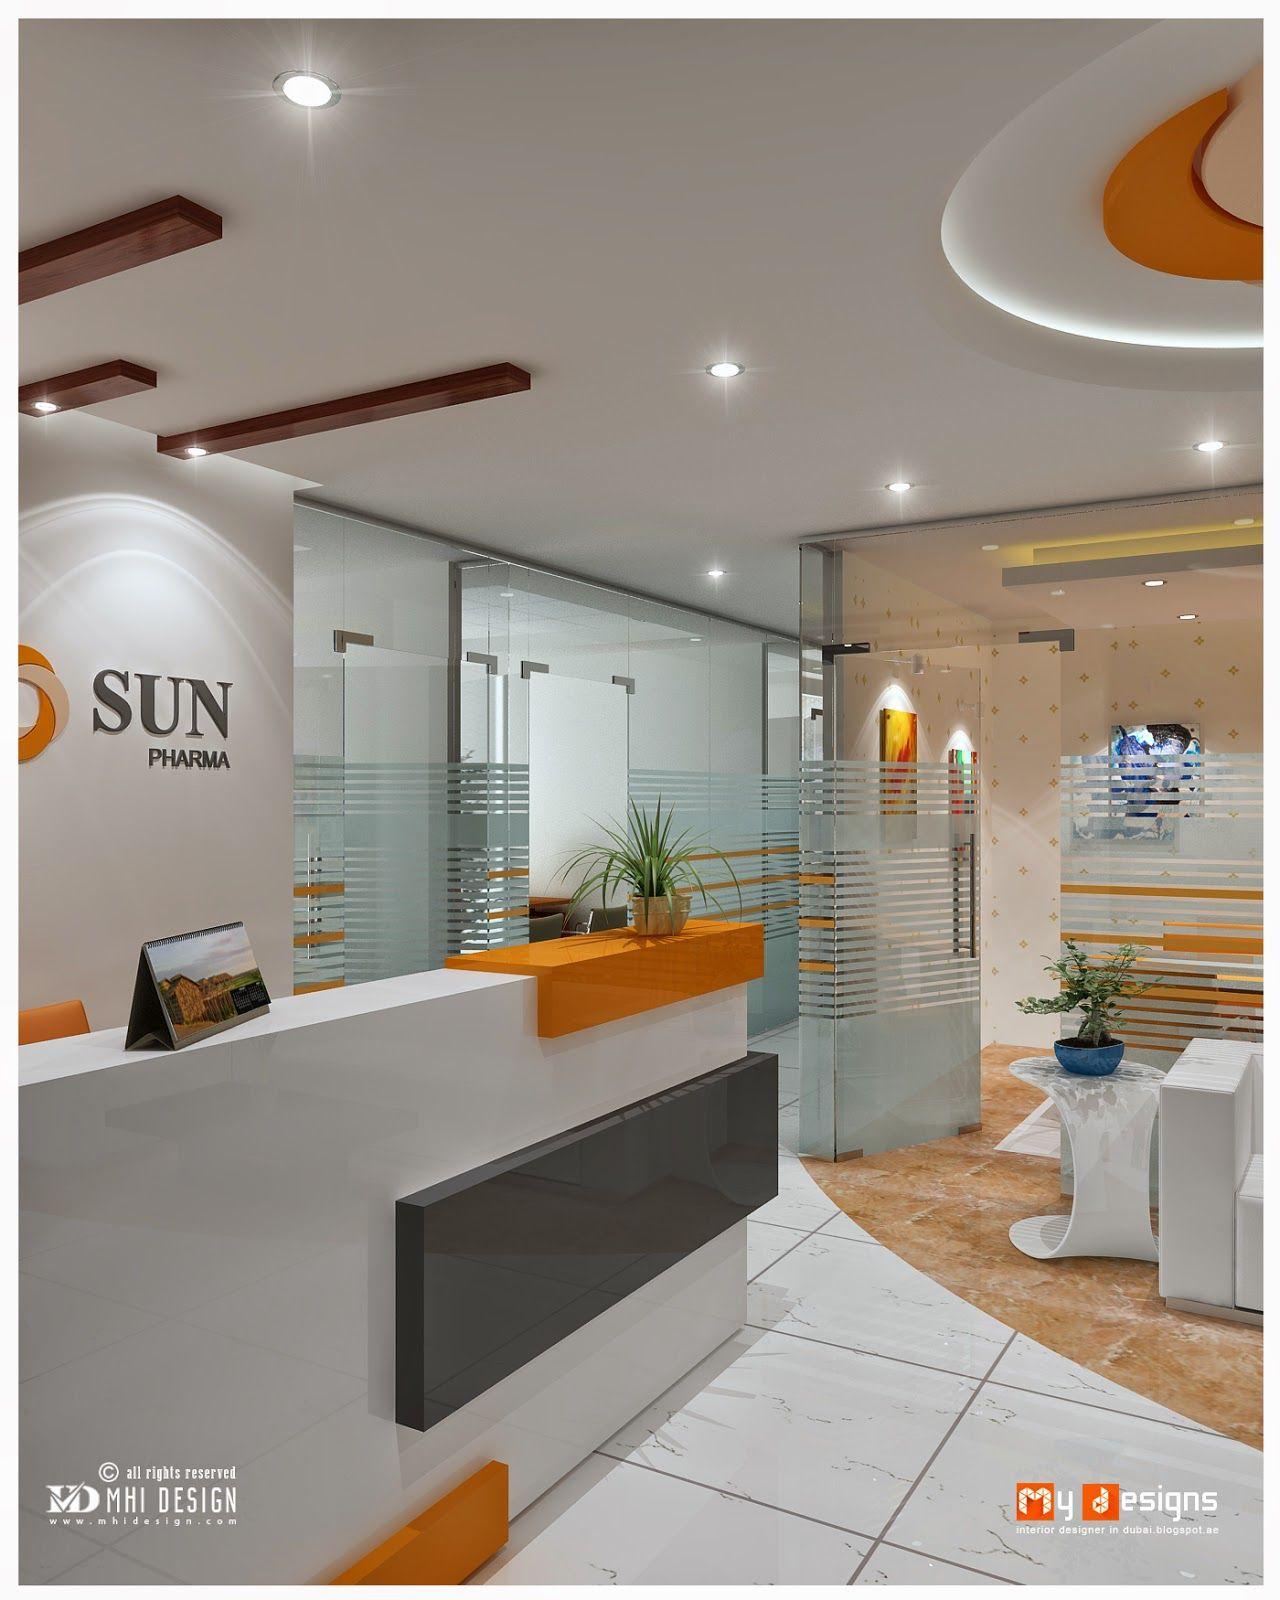 interior office design design interior office 1000. Office Reception Interiors Design Dubai Hi Friends,This Is Designs Proposal For Sun Pharma One Of MHI DESIGN . Interior 1000